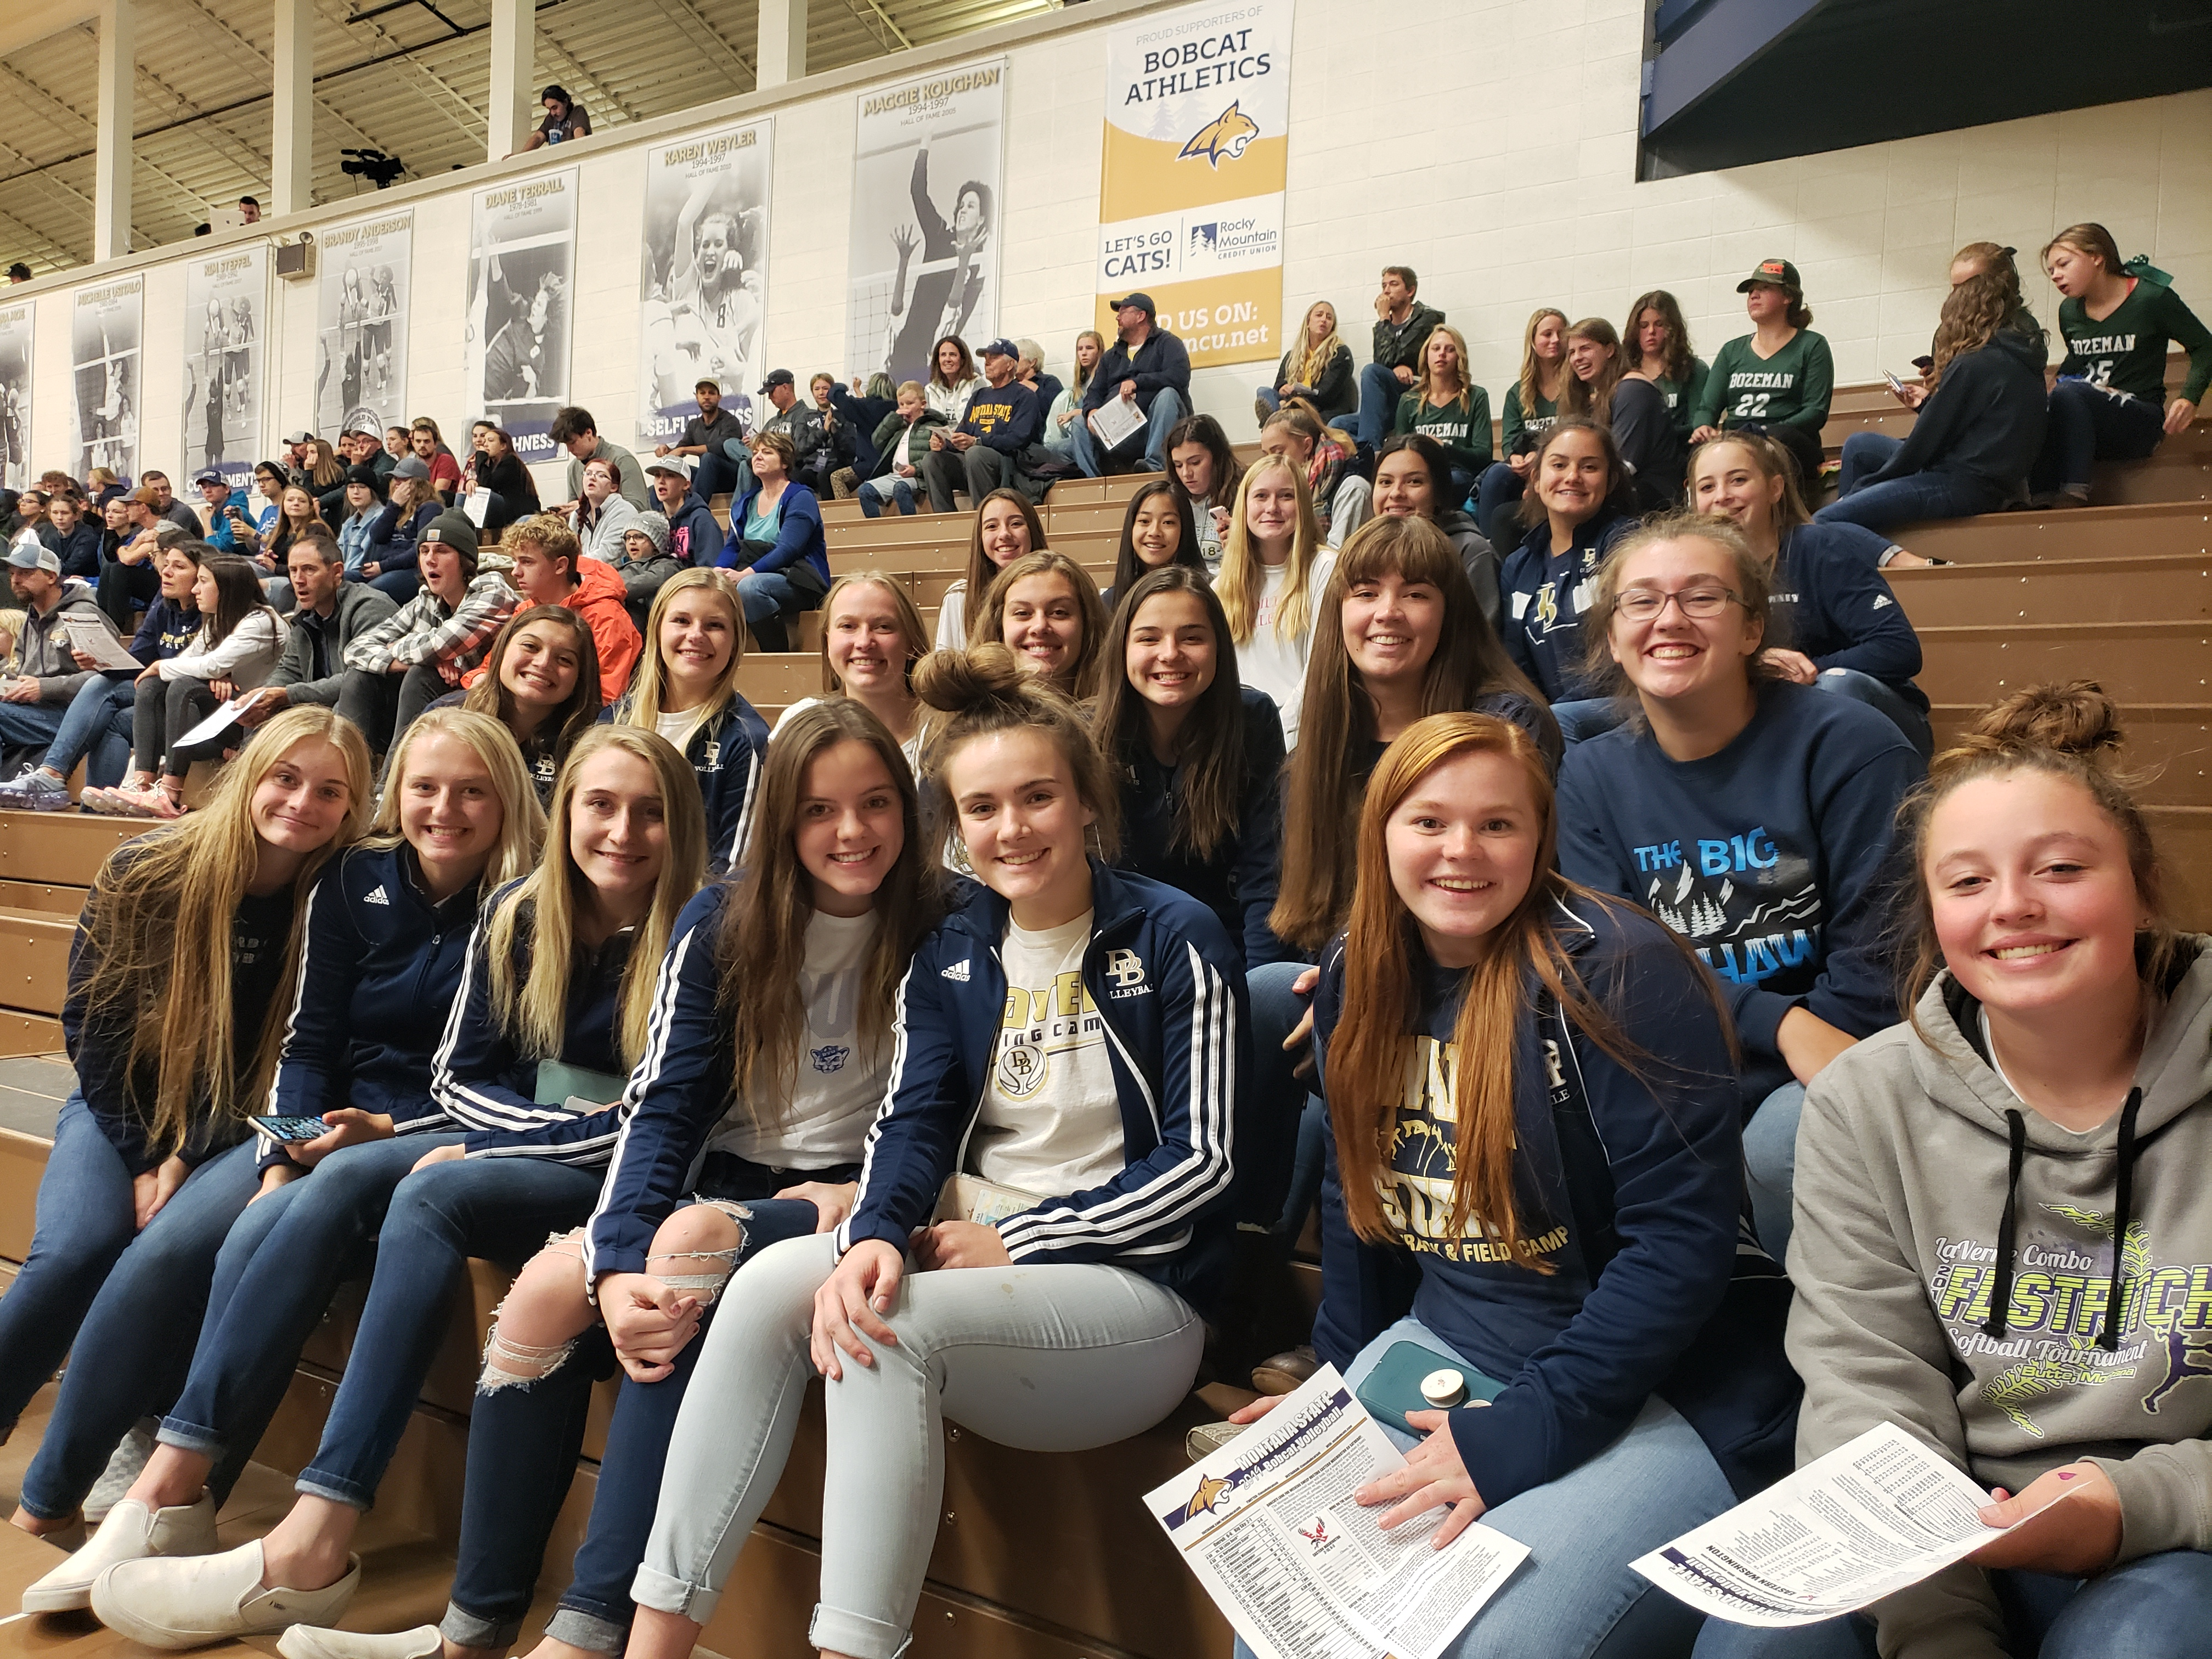 A photo of the volleyball team sitting in the stands enjoying watching some college volleyball